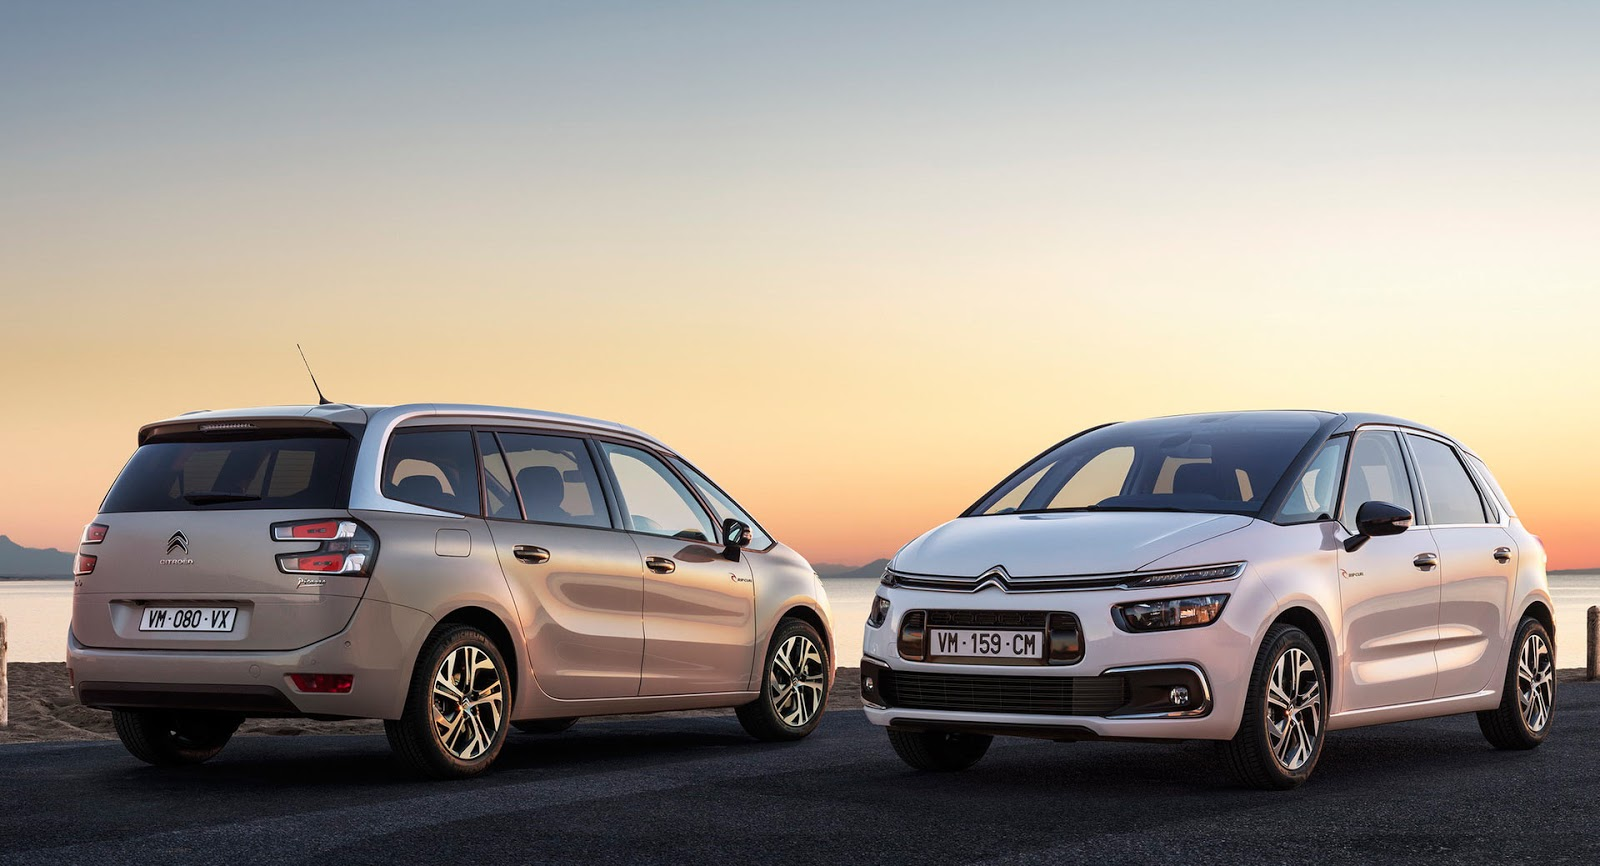 Citroen And Rip Curl Have Announced A New Limited Edition Of The C4 Picasso  And Grand C4 Picasso MPVs, Following The Success Of The C4 Cactus And The  ...